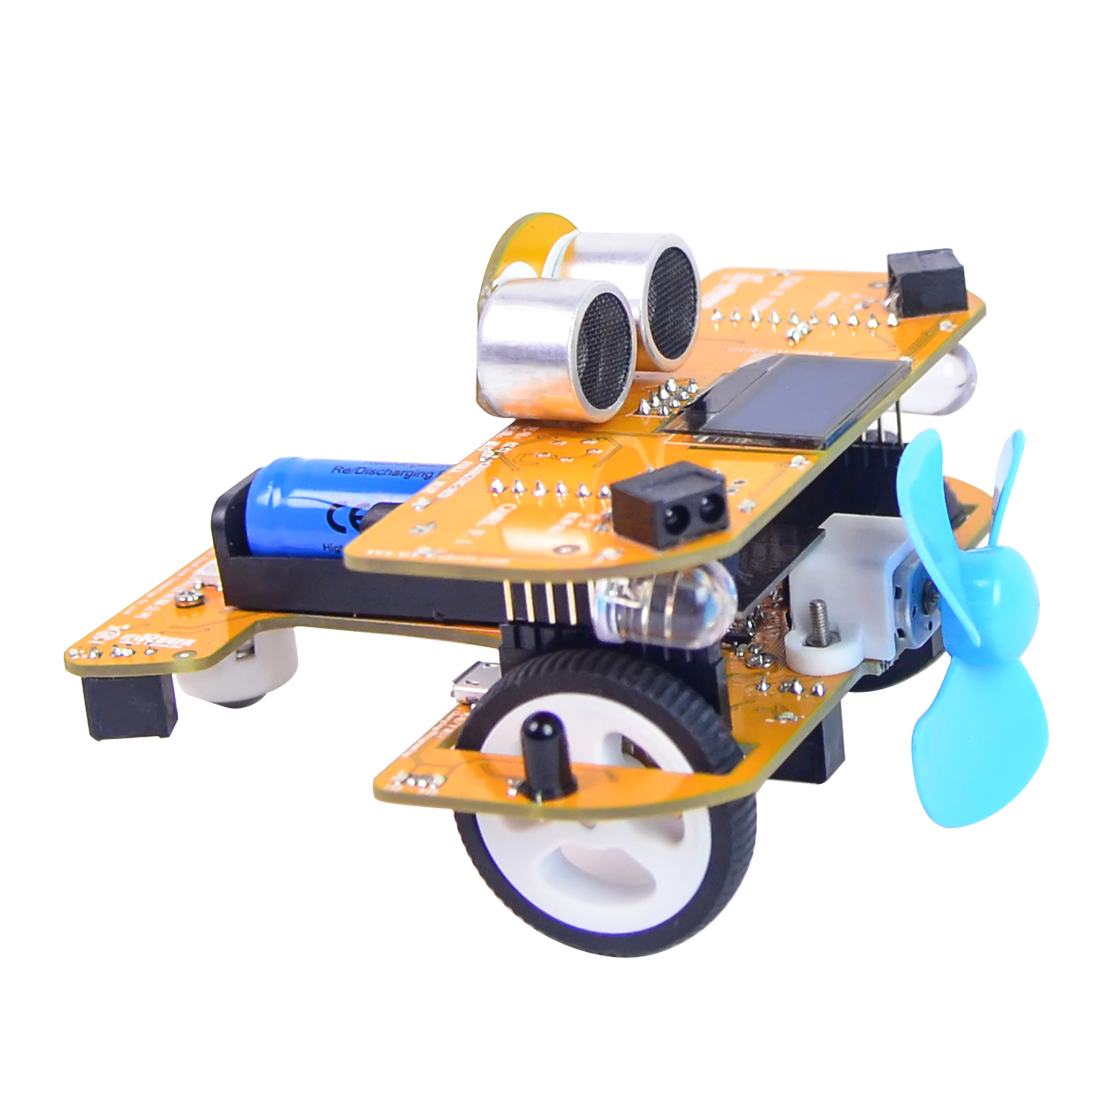 Programmable Intelligent Car Kids Toy Steam Educational DIY Plane With Graphical Processing Scratch Mixly For Arduino UNO R3